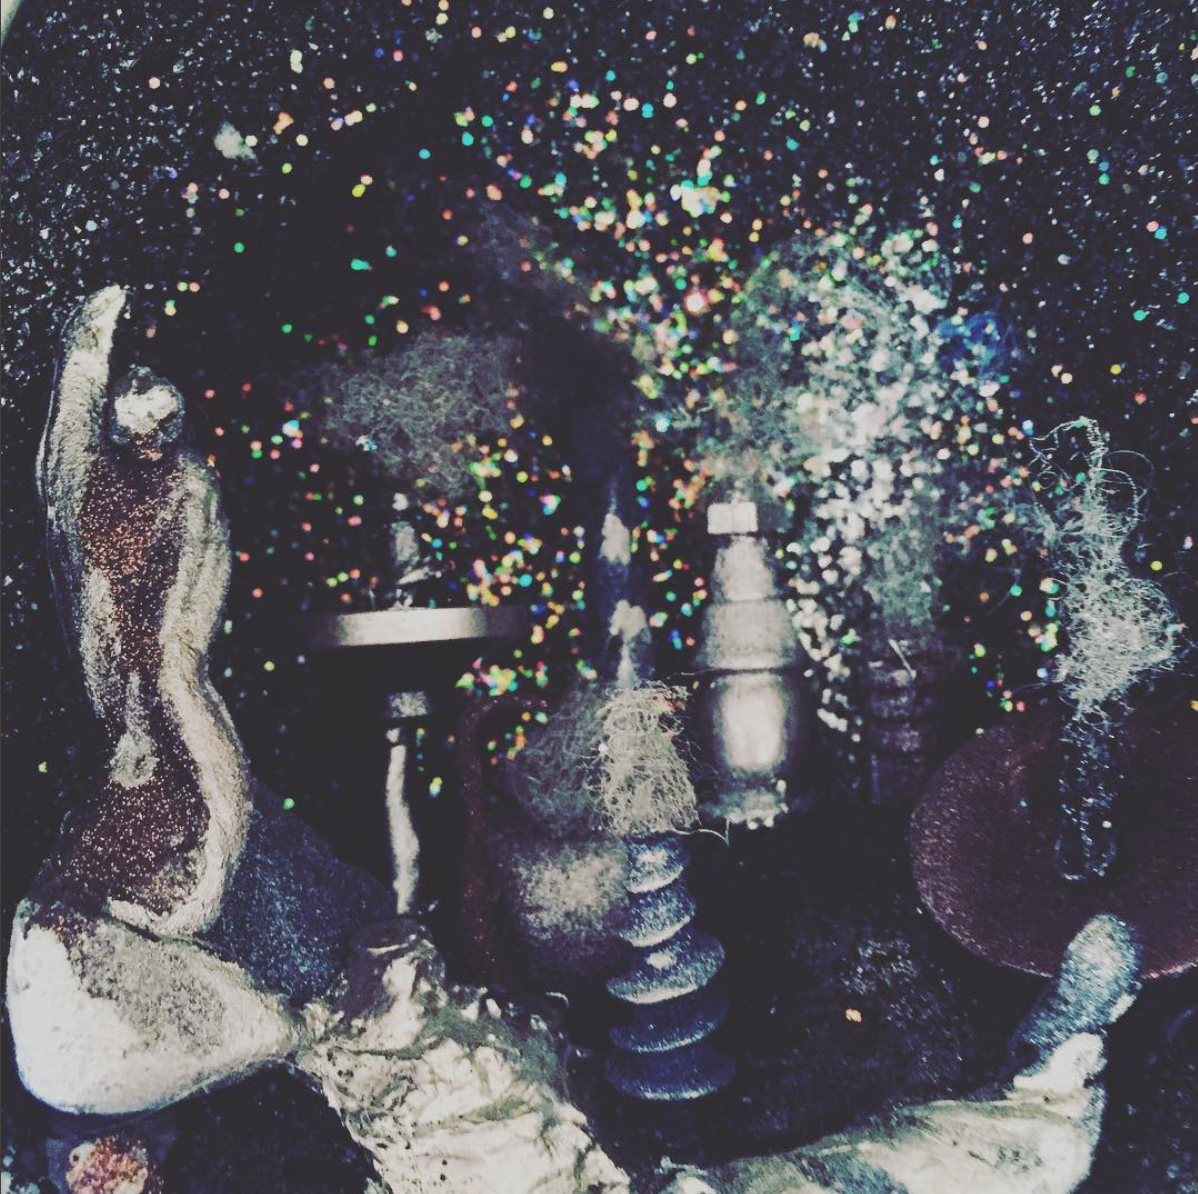 Detail of orb city. Materials: found objects, glitter